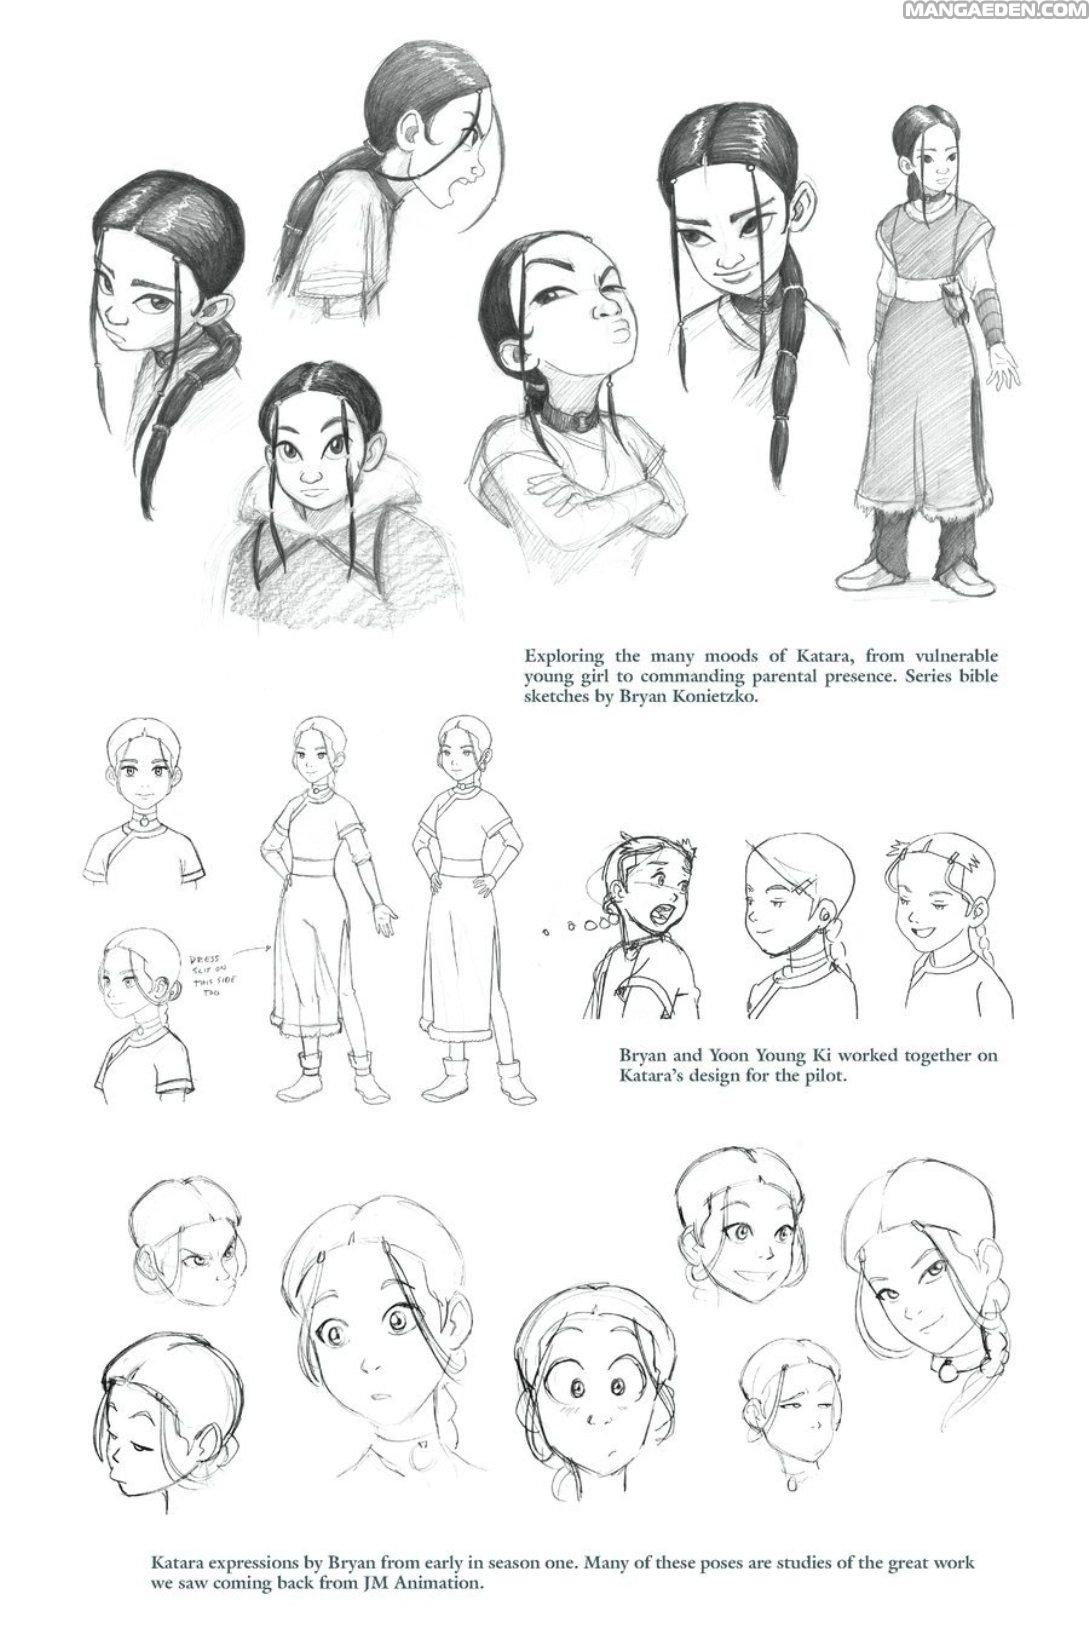 Katara expressions by bryan from early season one manga avatar the last airbender the lost adventures chapter 30 page 2